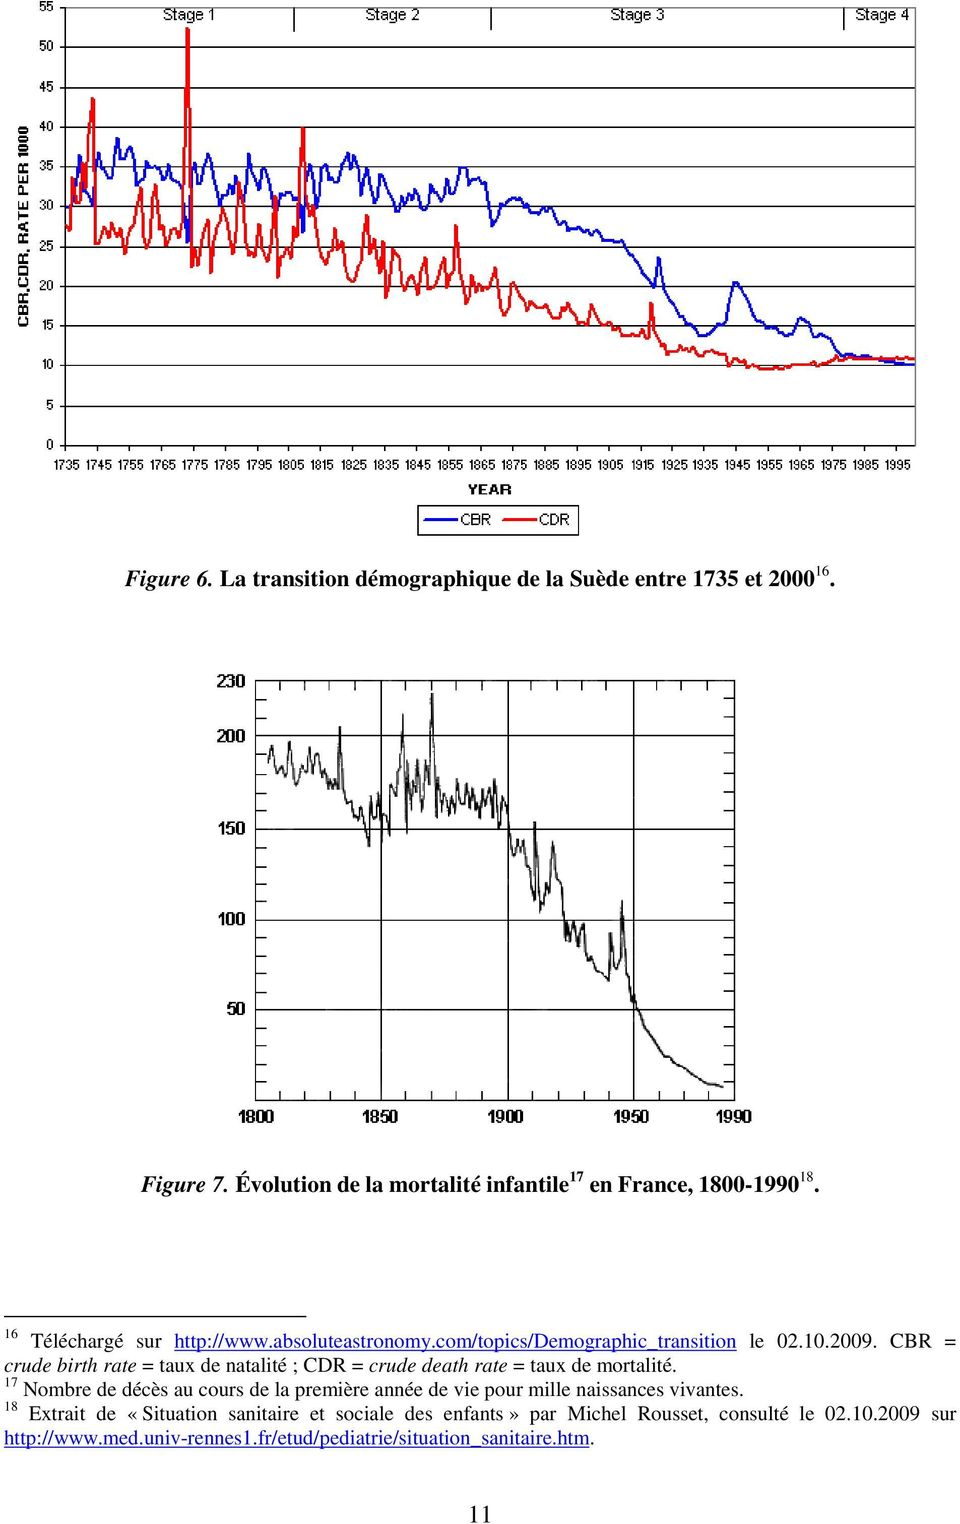 CBR = crude birth rate = taux de natalité ; CDR = crude death rate = taux de mortalité.